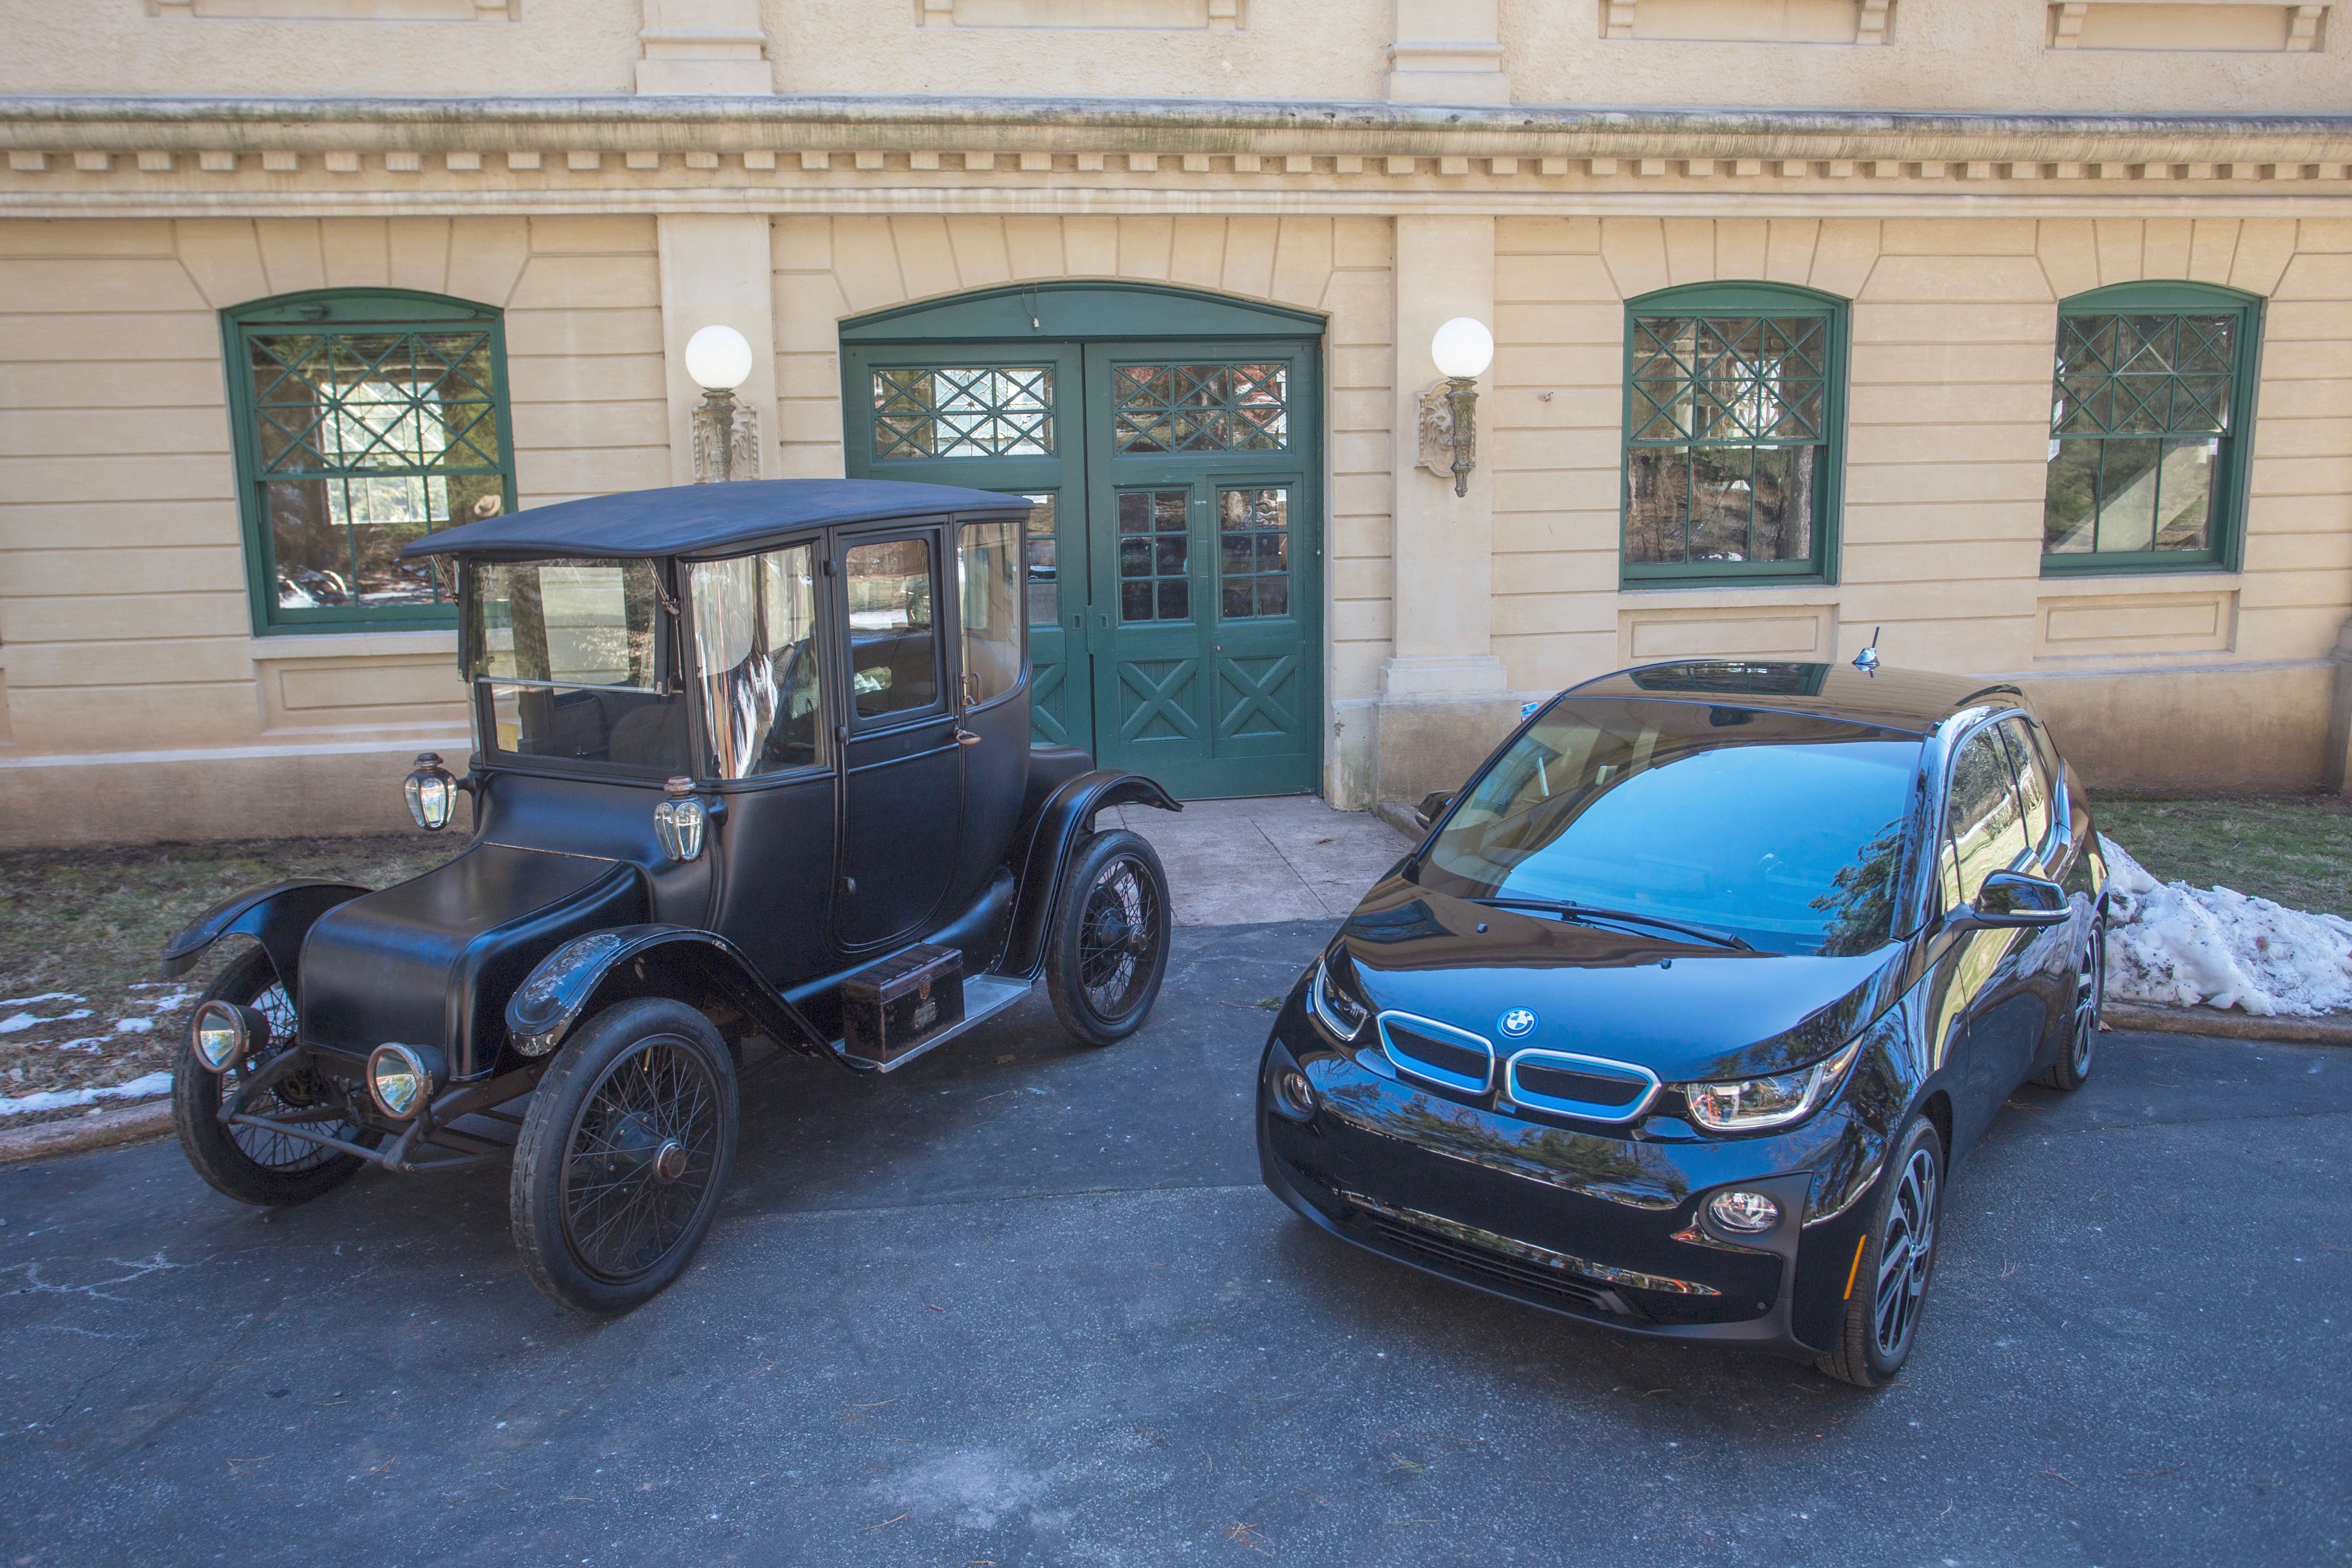 Detroit Electric and i3 at the Edison park | BMW photo